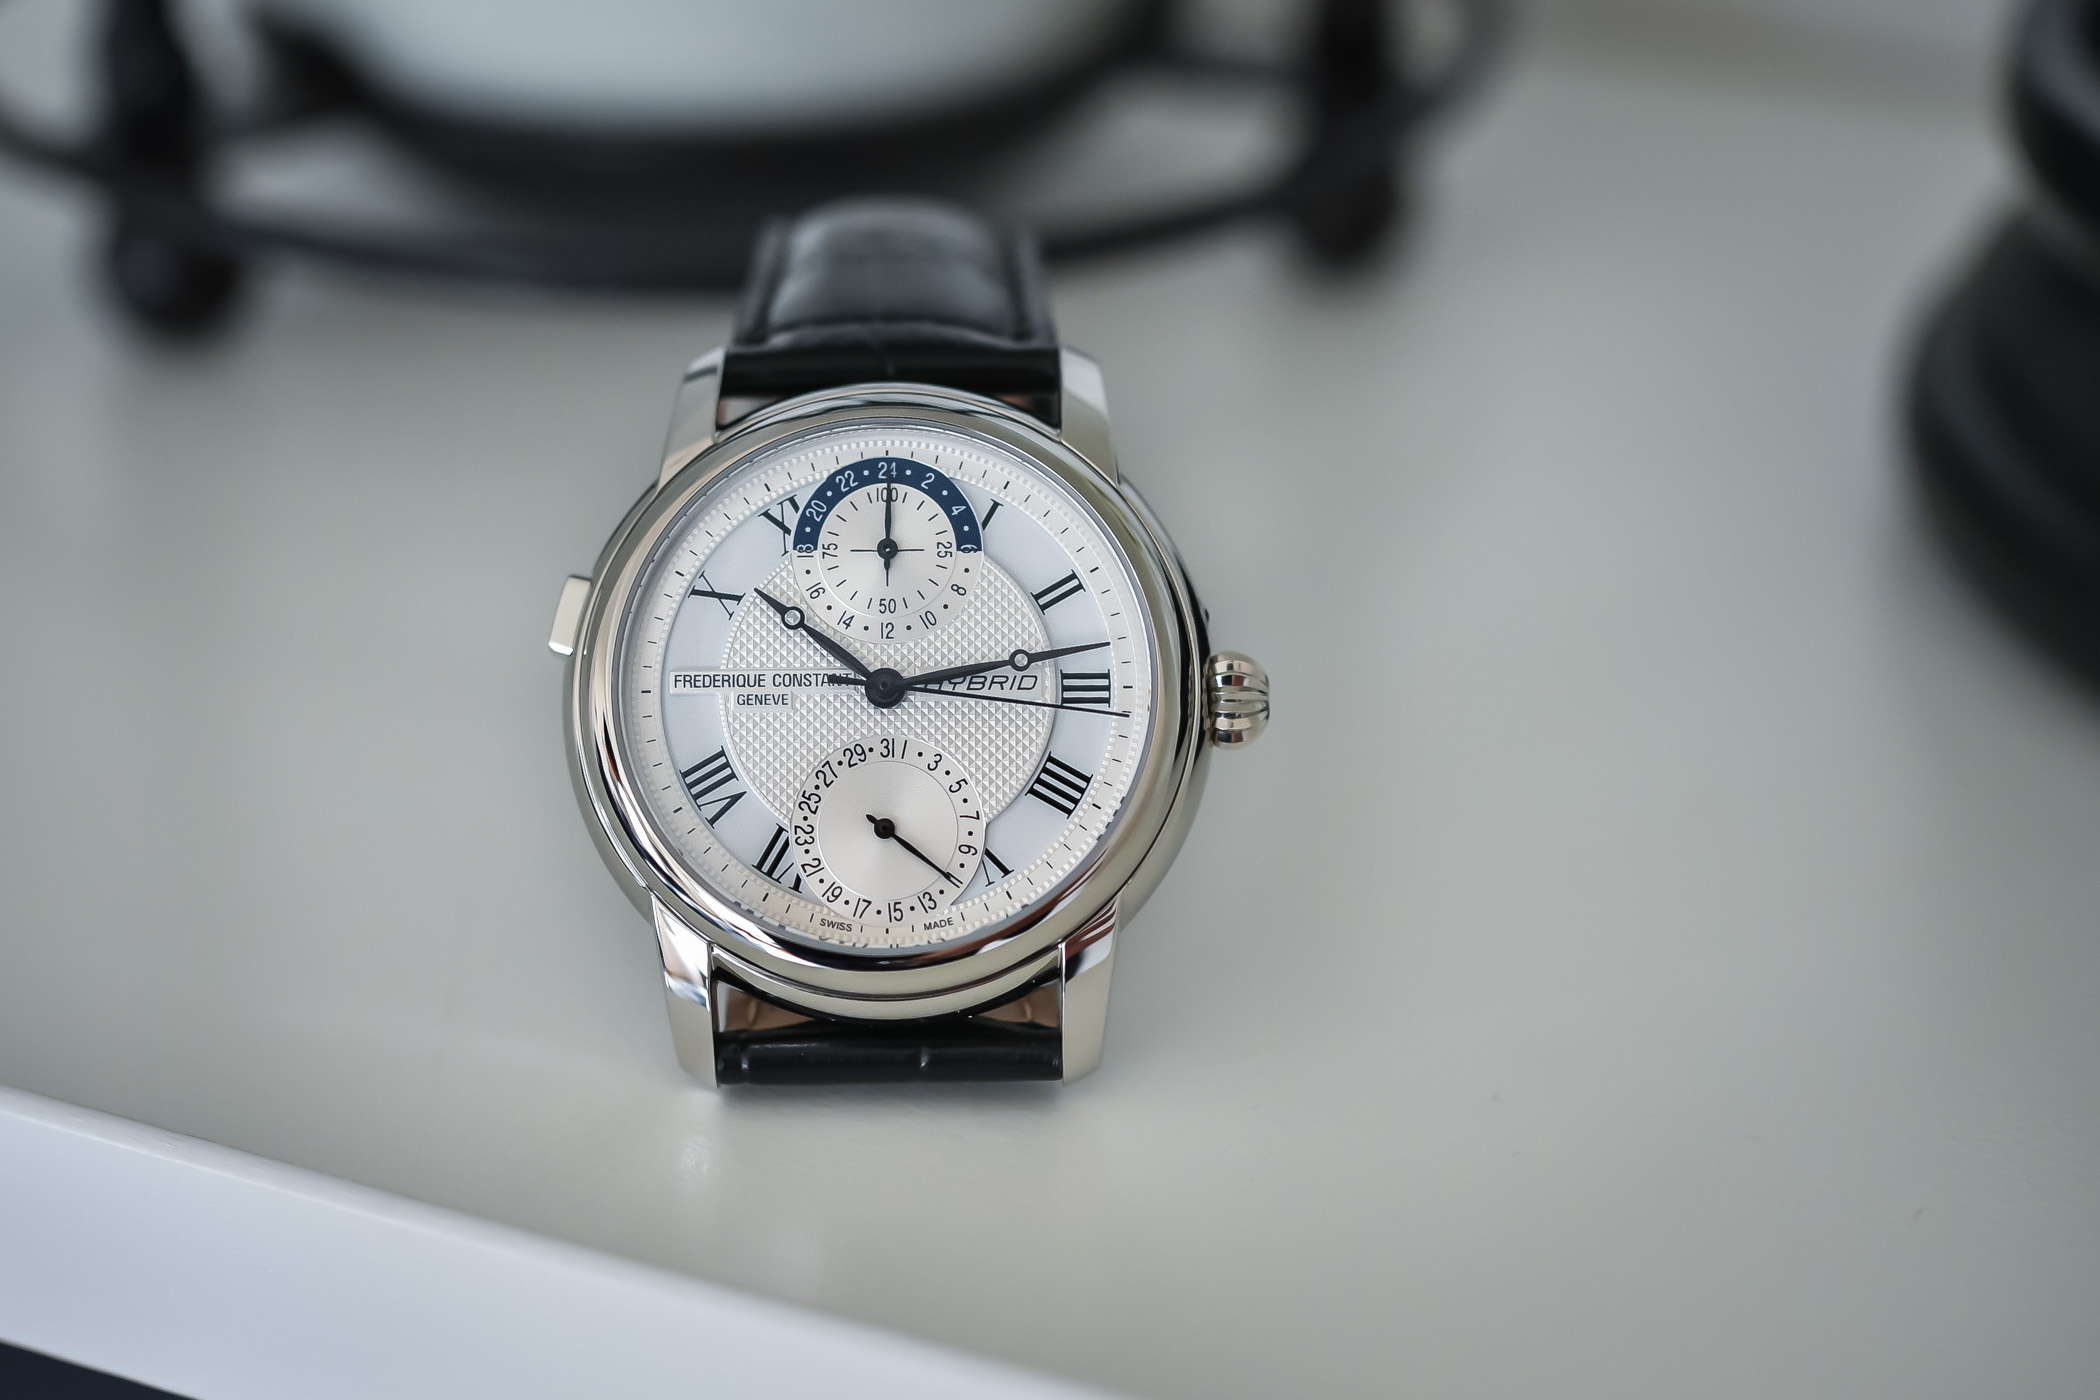 Frederique Constant Hybrid Manufacture - review